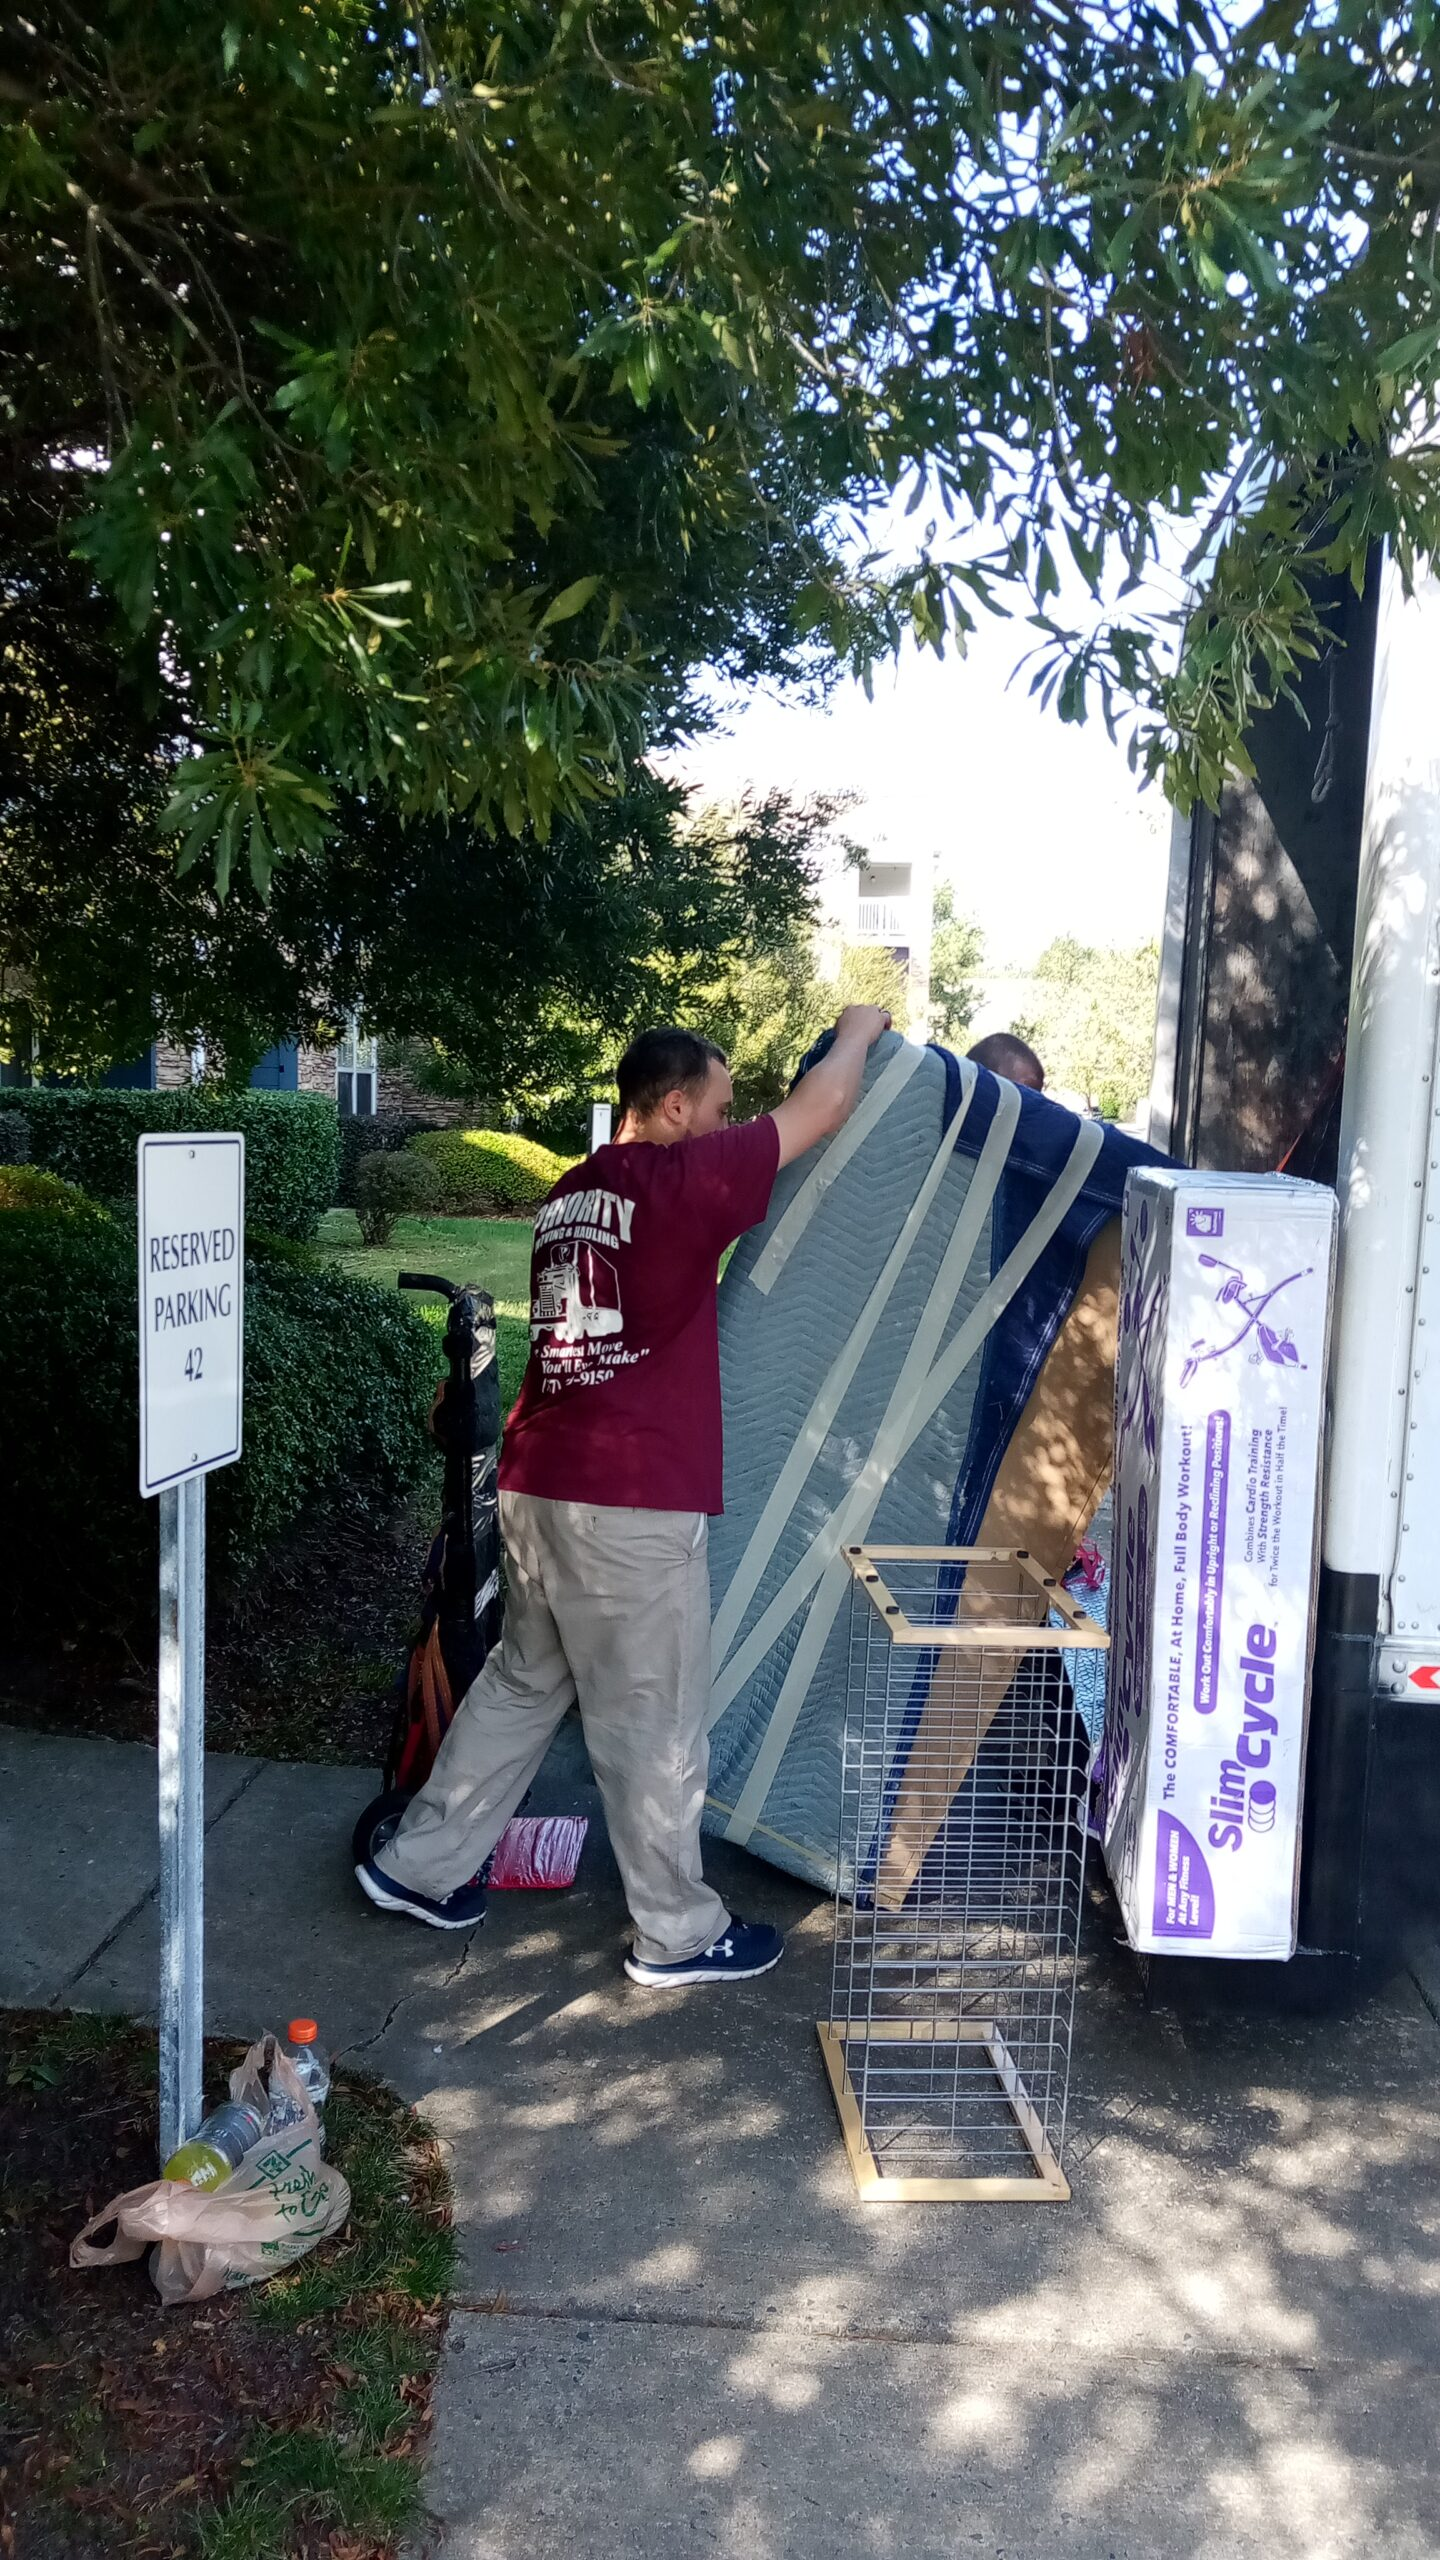 Loading of Heavy Furniture Into the Truck